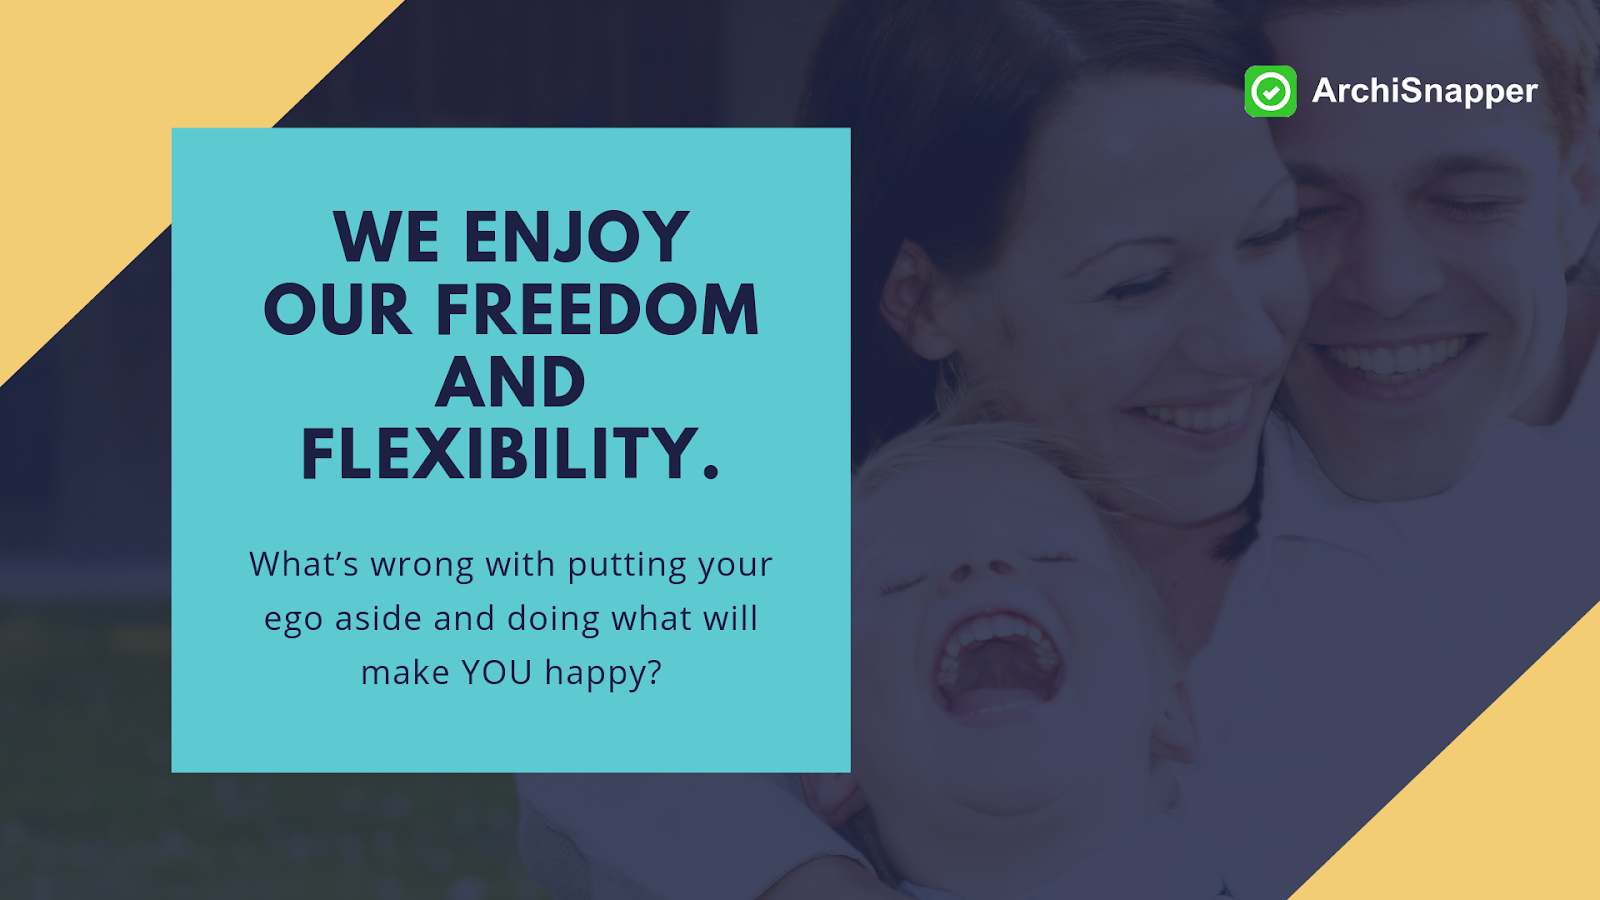 the importance of freedom and flexibility via archisnapper blog